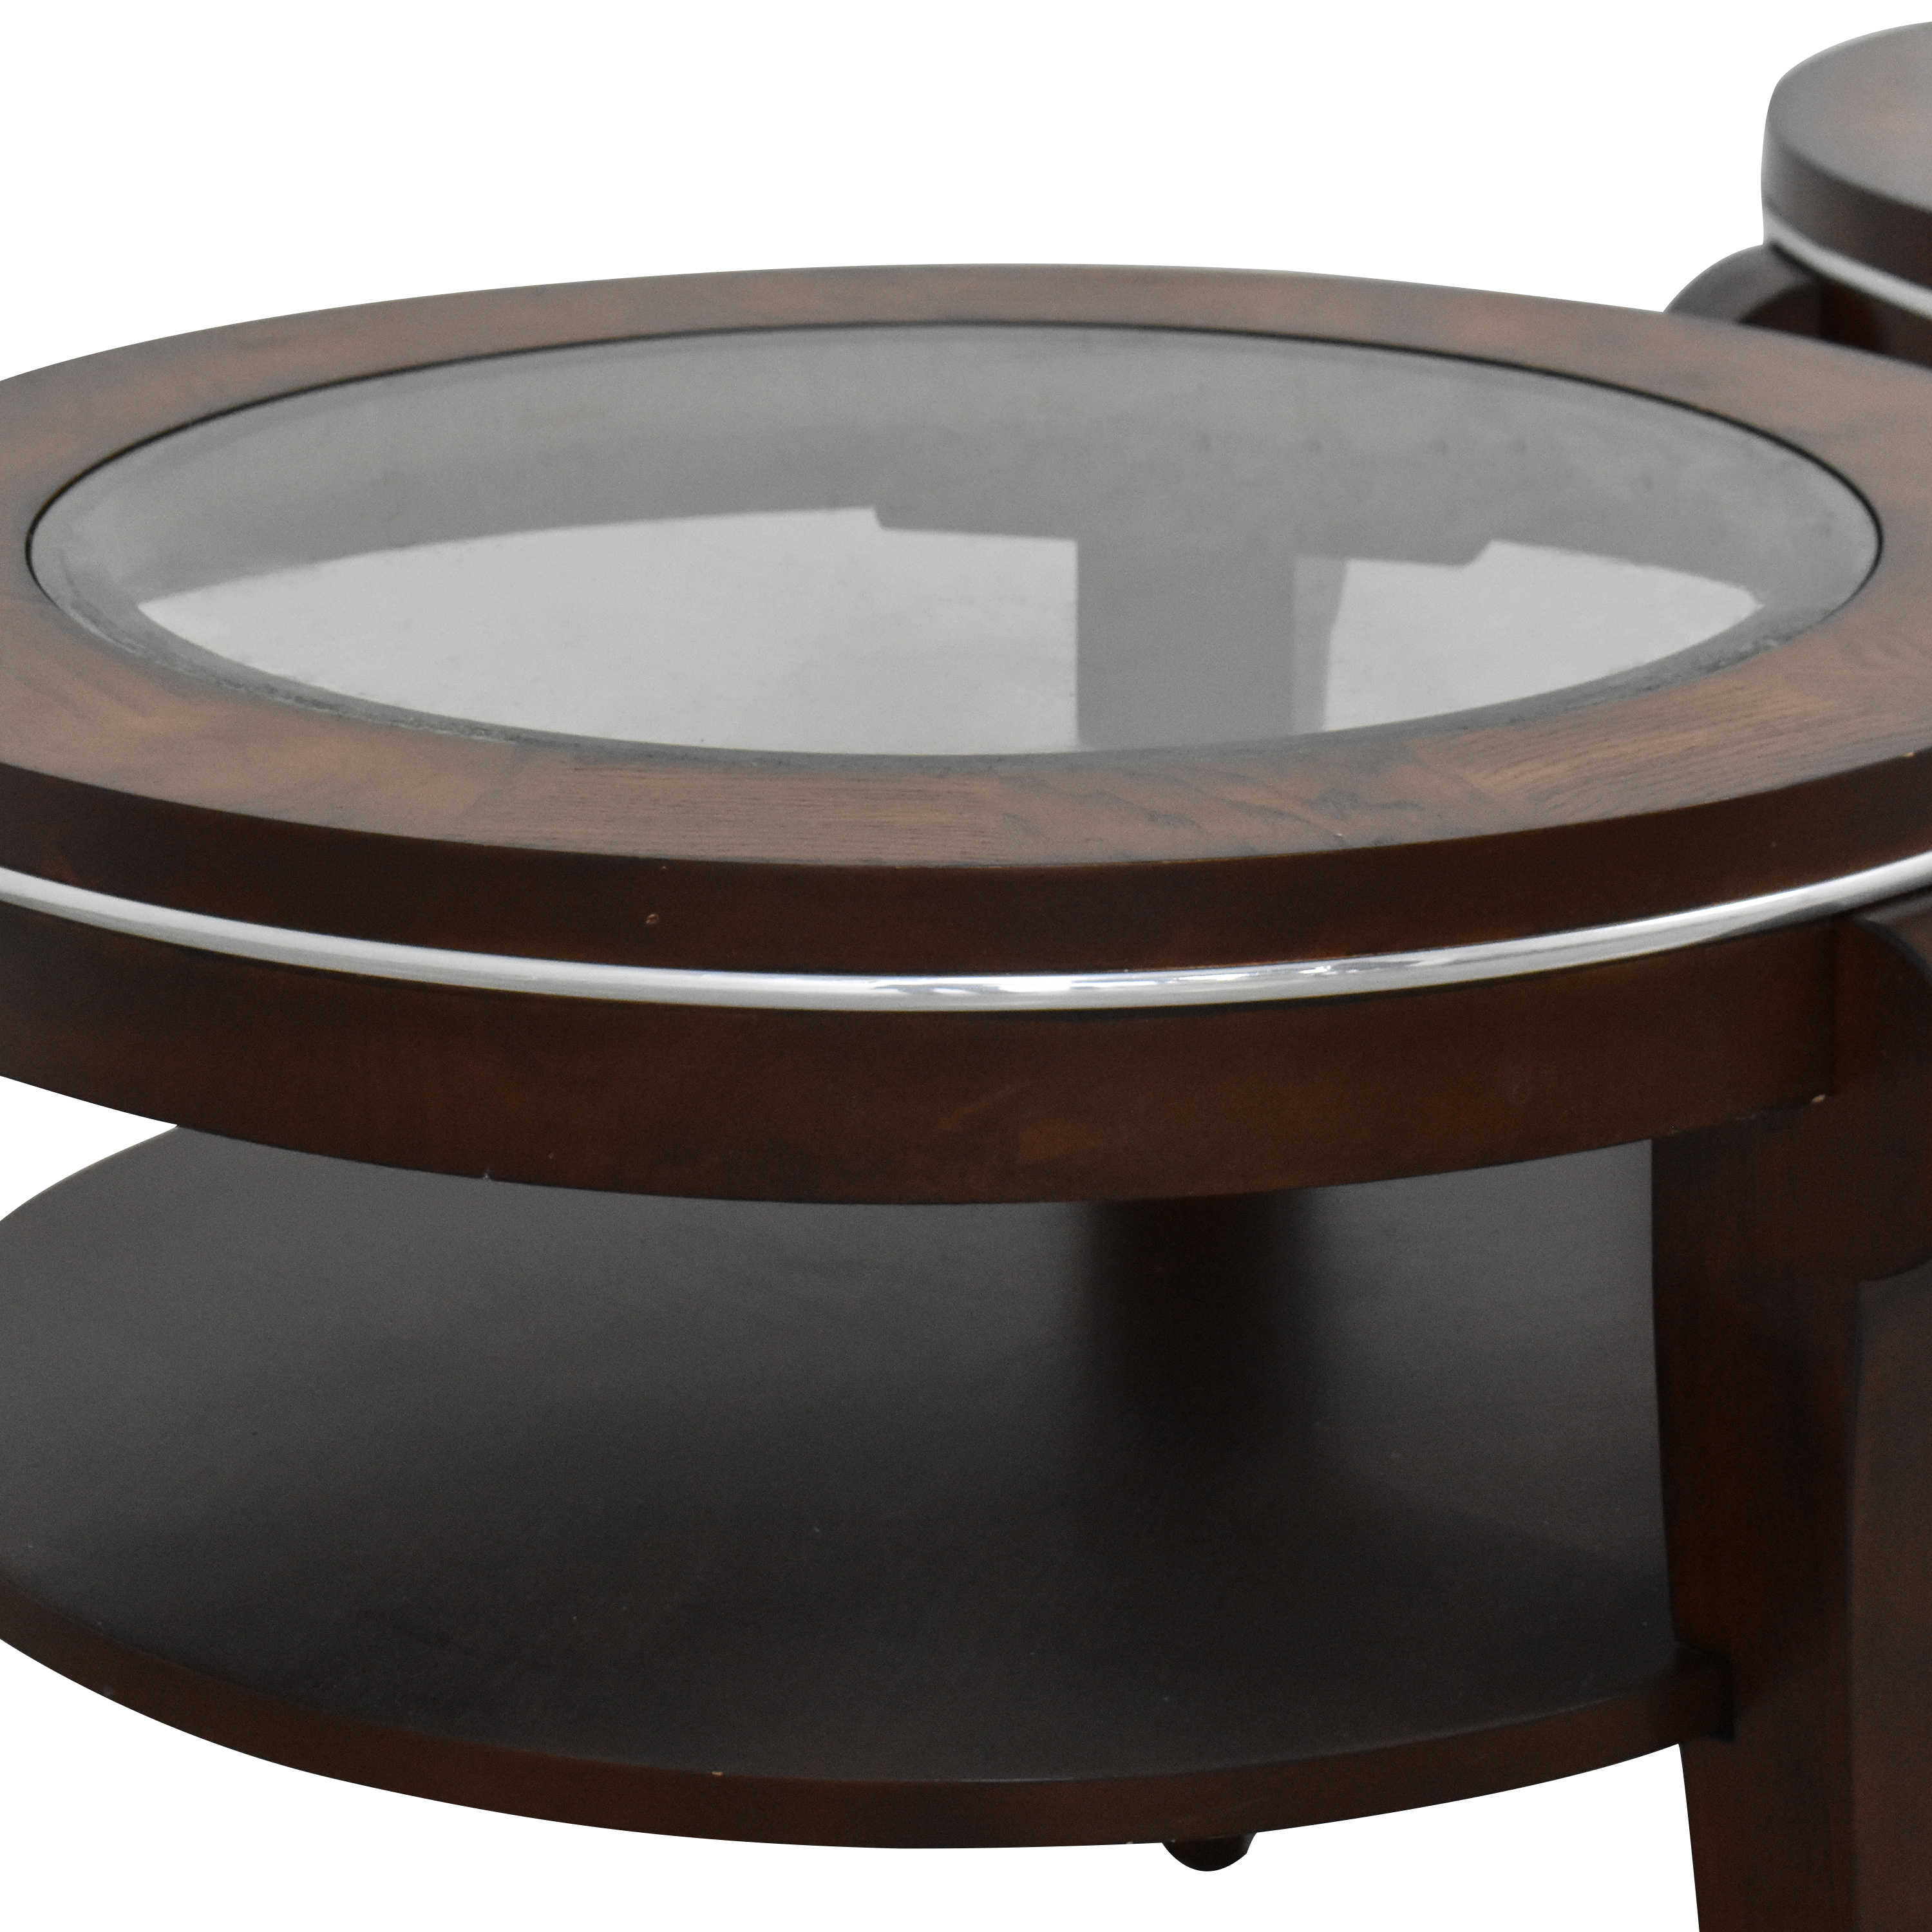 Raymour & Flanigan Raymour & Flanigan Round End Tables on sale